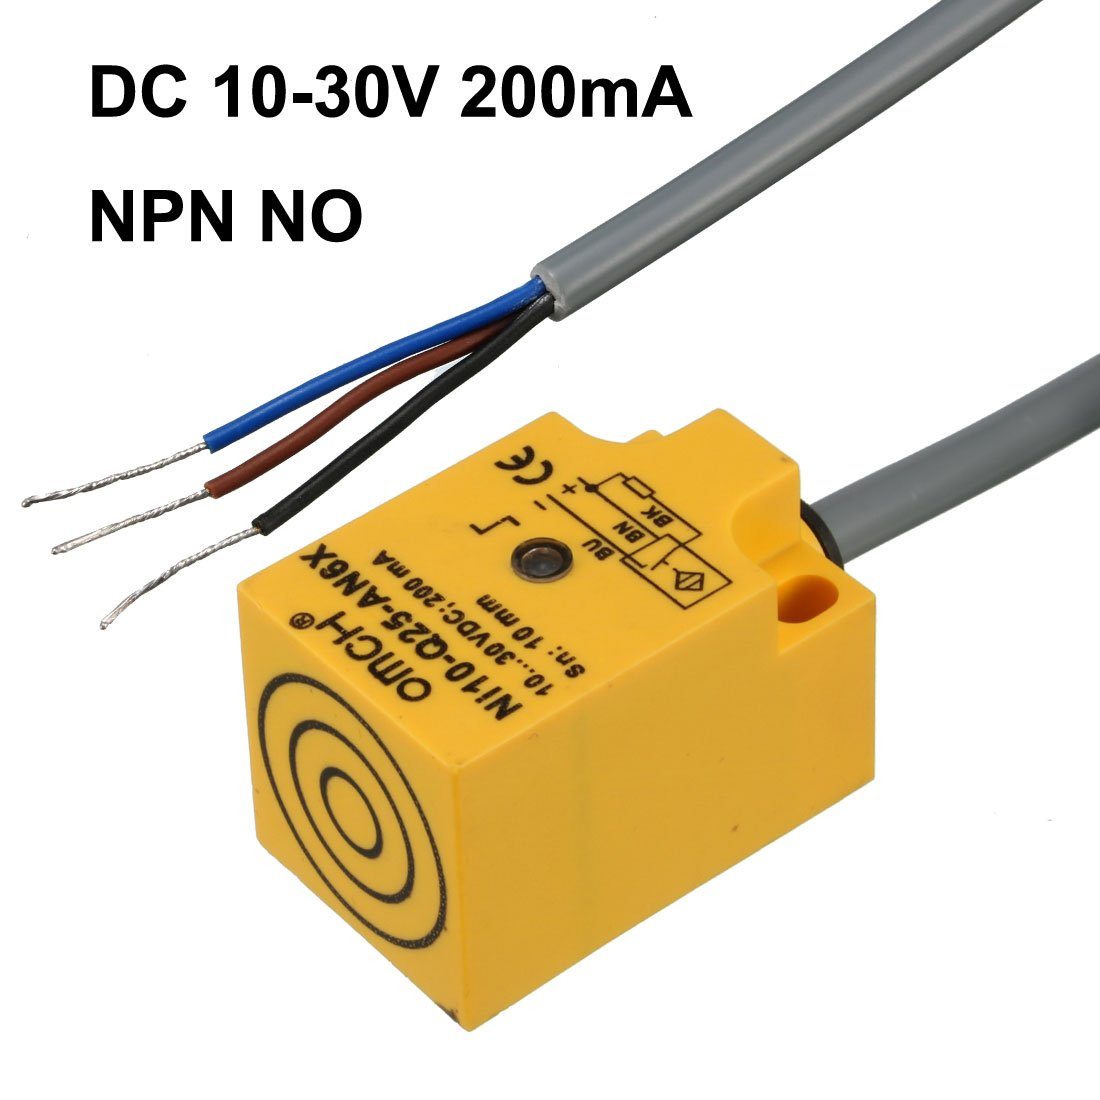 Sn04 P 4mm Approach Sensor Proximity Switch Pnp No Dc 10 Wiring Diagram On Also 30v 200ma Home Improvement